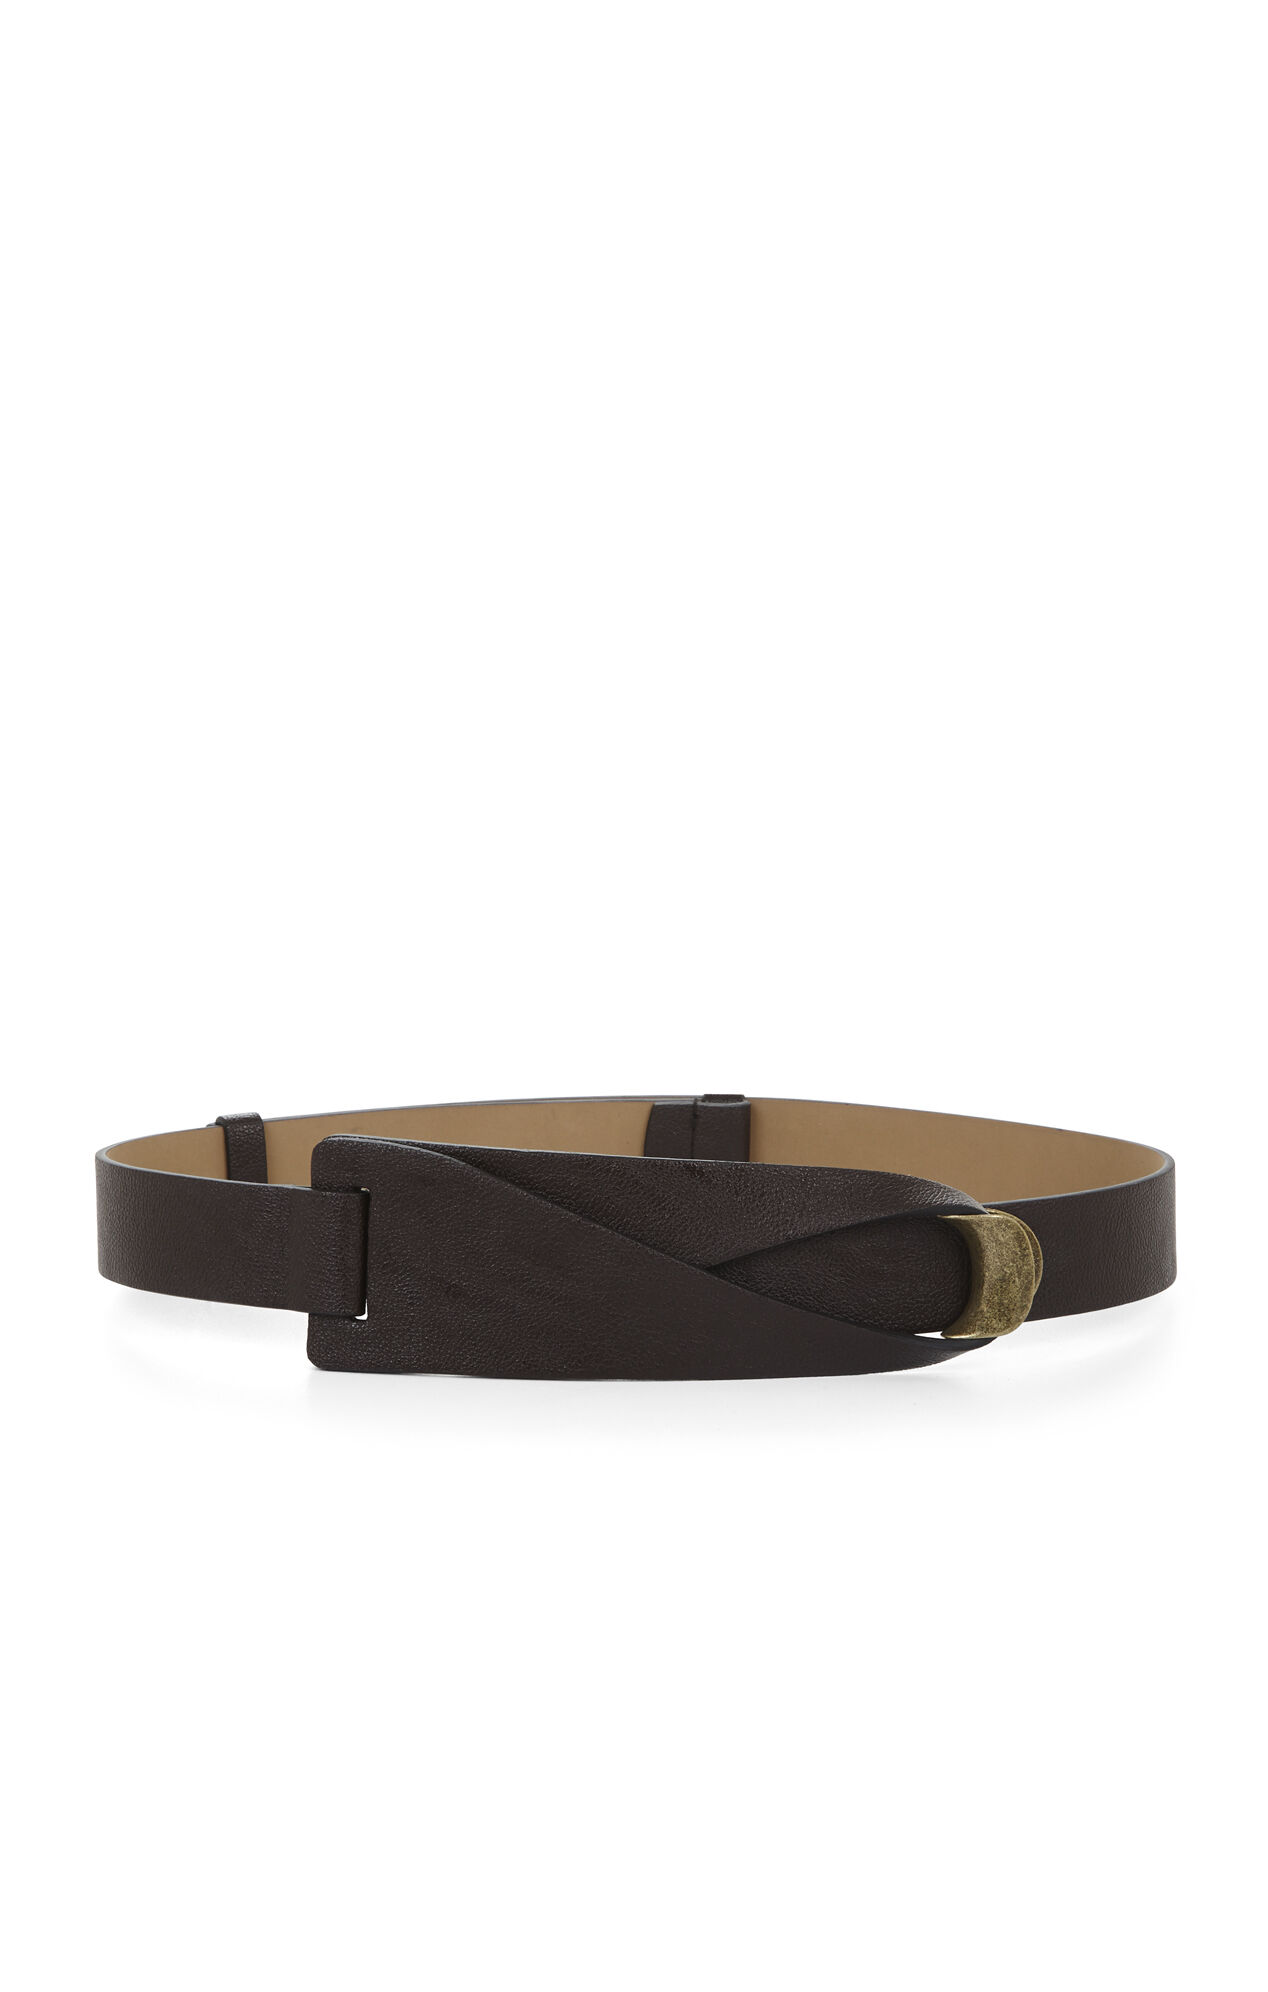 Loop-Front Hip Belt